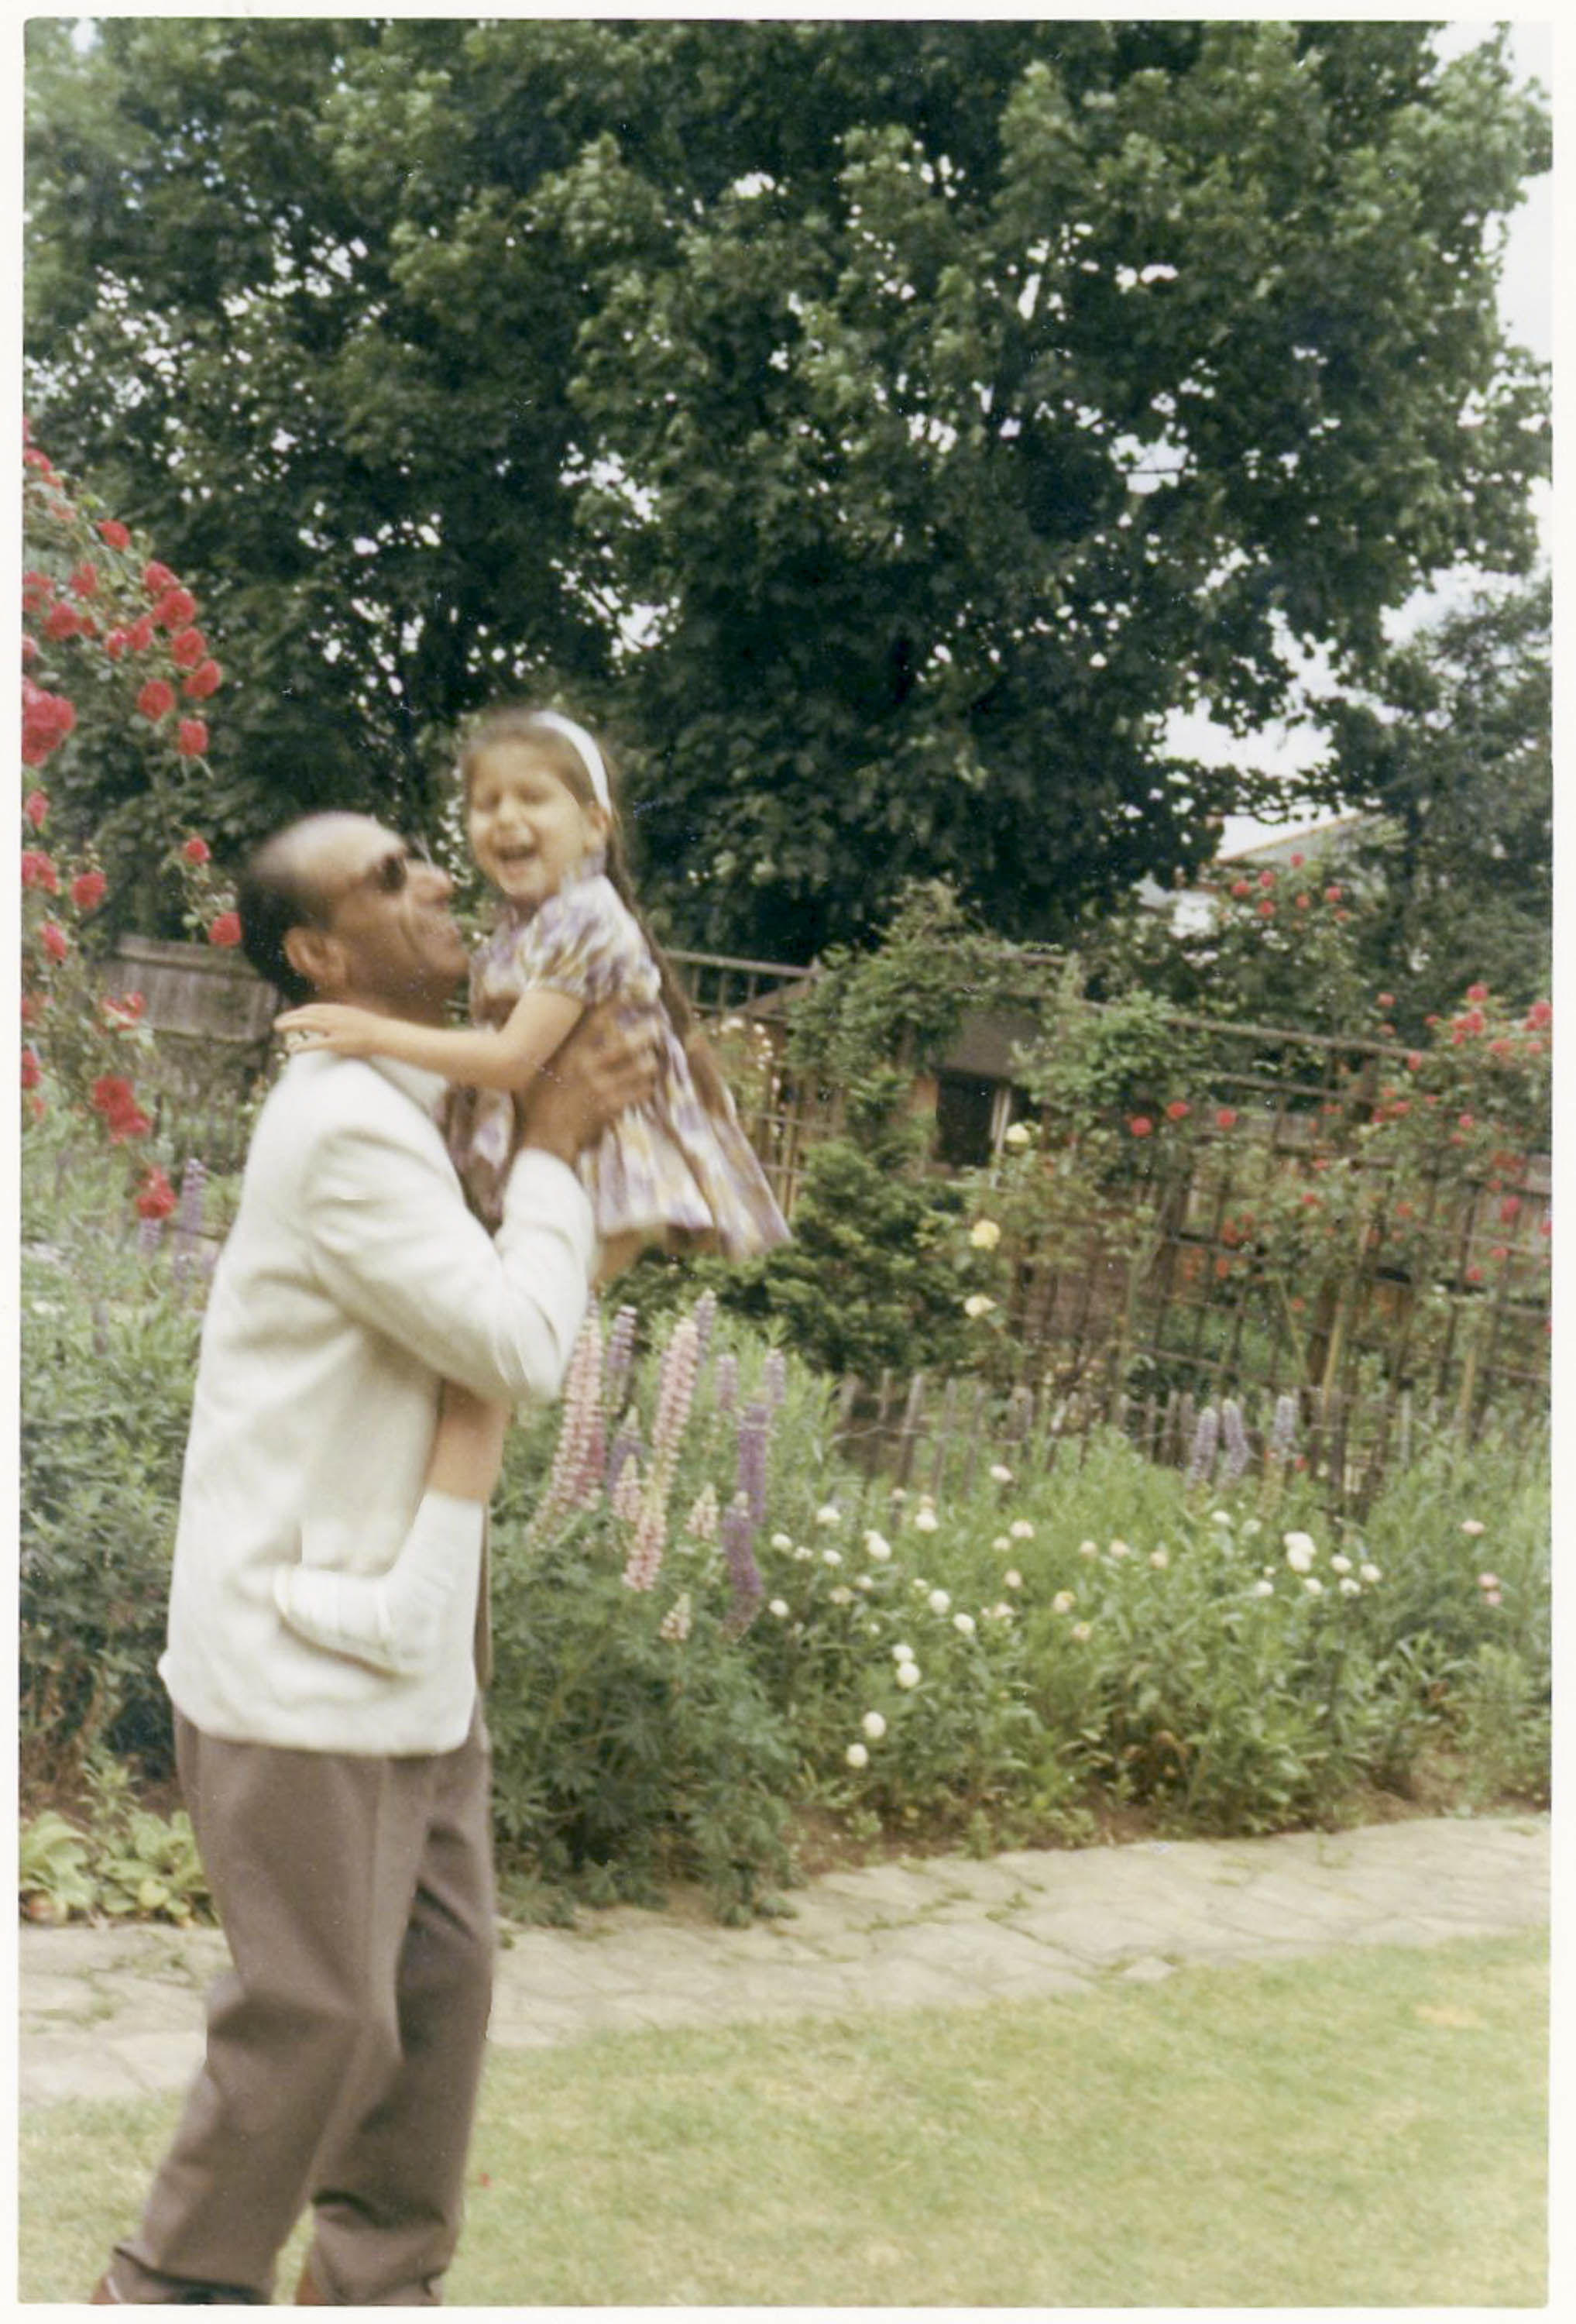 A young girl and her father play in a garden, he lifts her up high. Herbacious border in background. She is wearing a summer dress, he is in brown slacks and a cream cardigan.